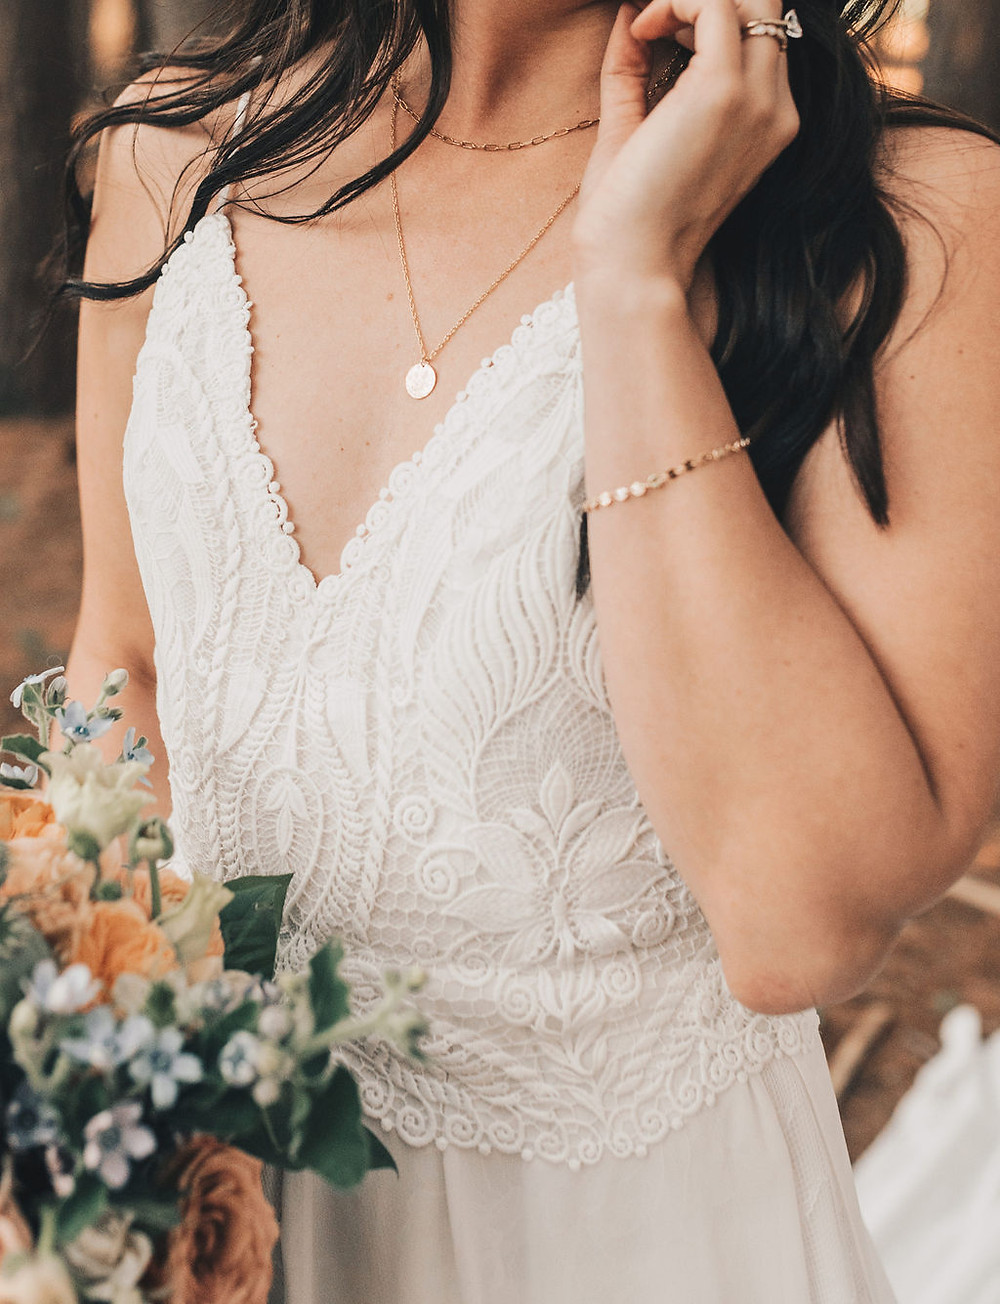 Custom jewelry added a simple touch to the bride's look.